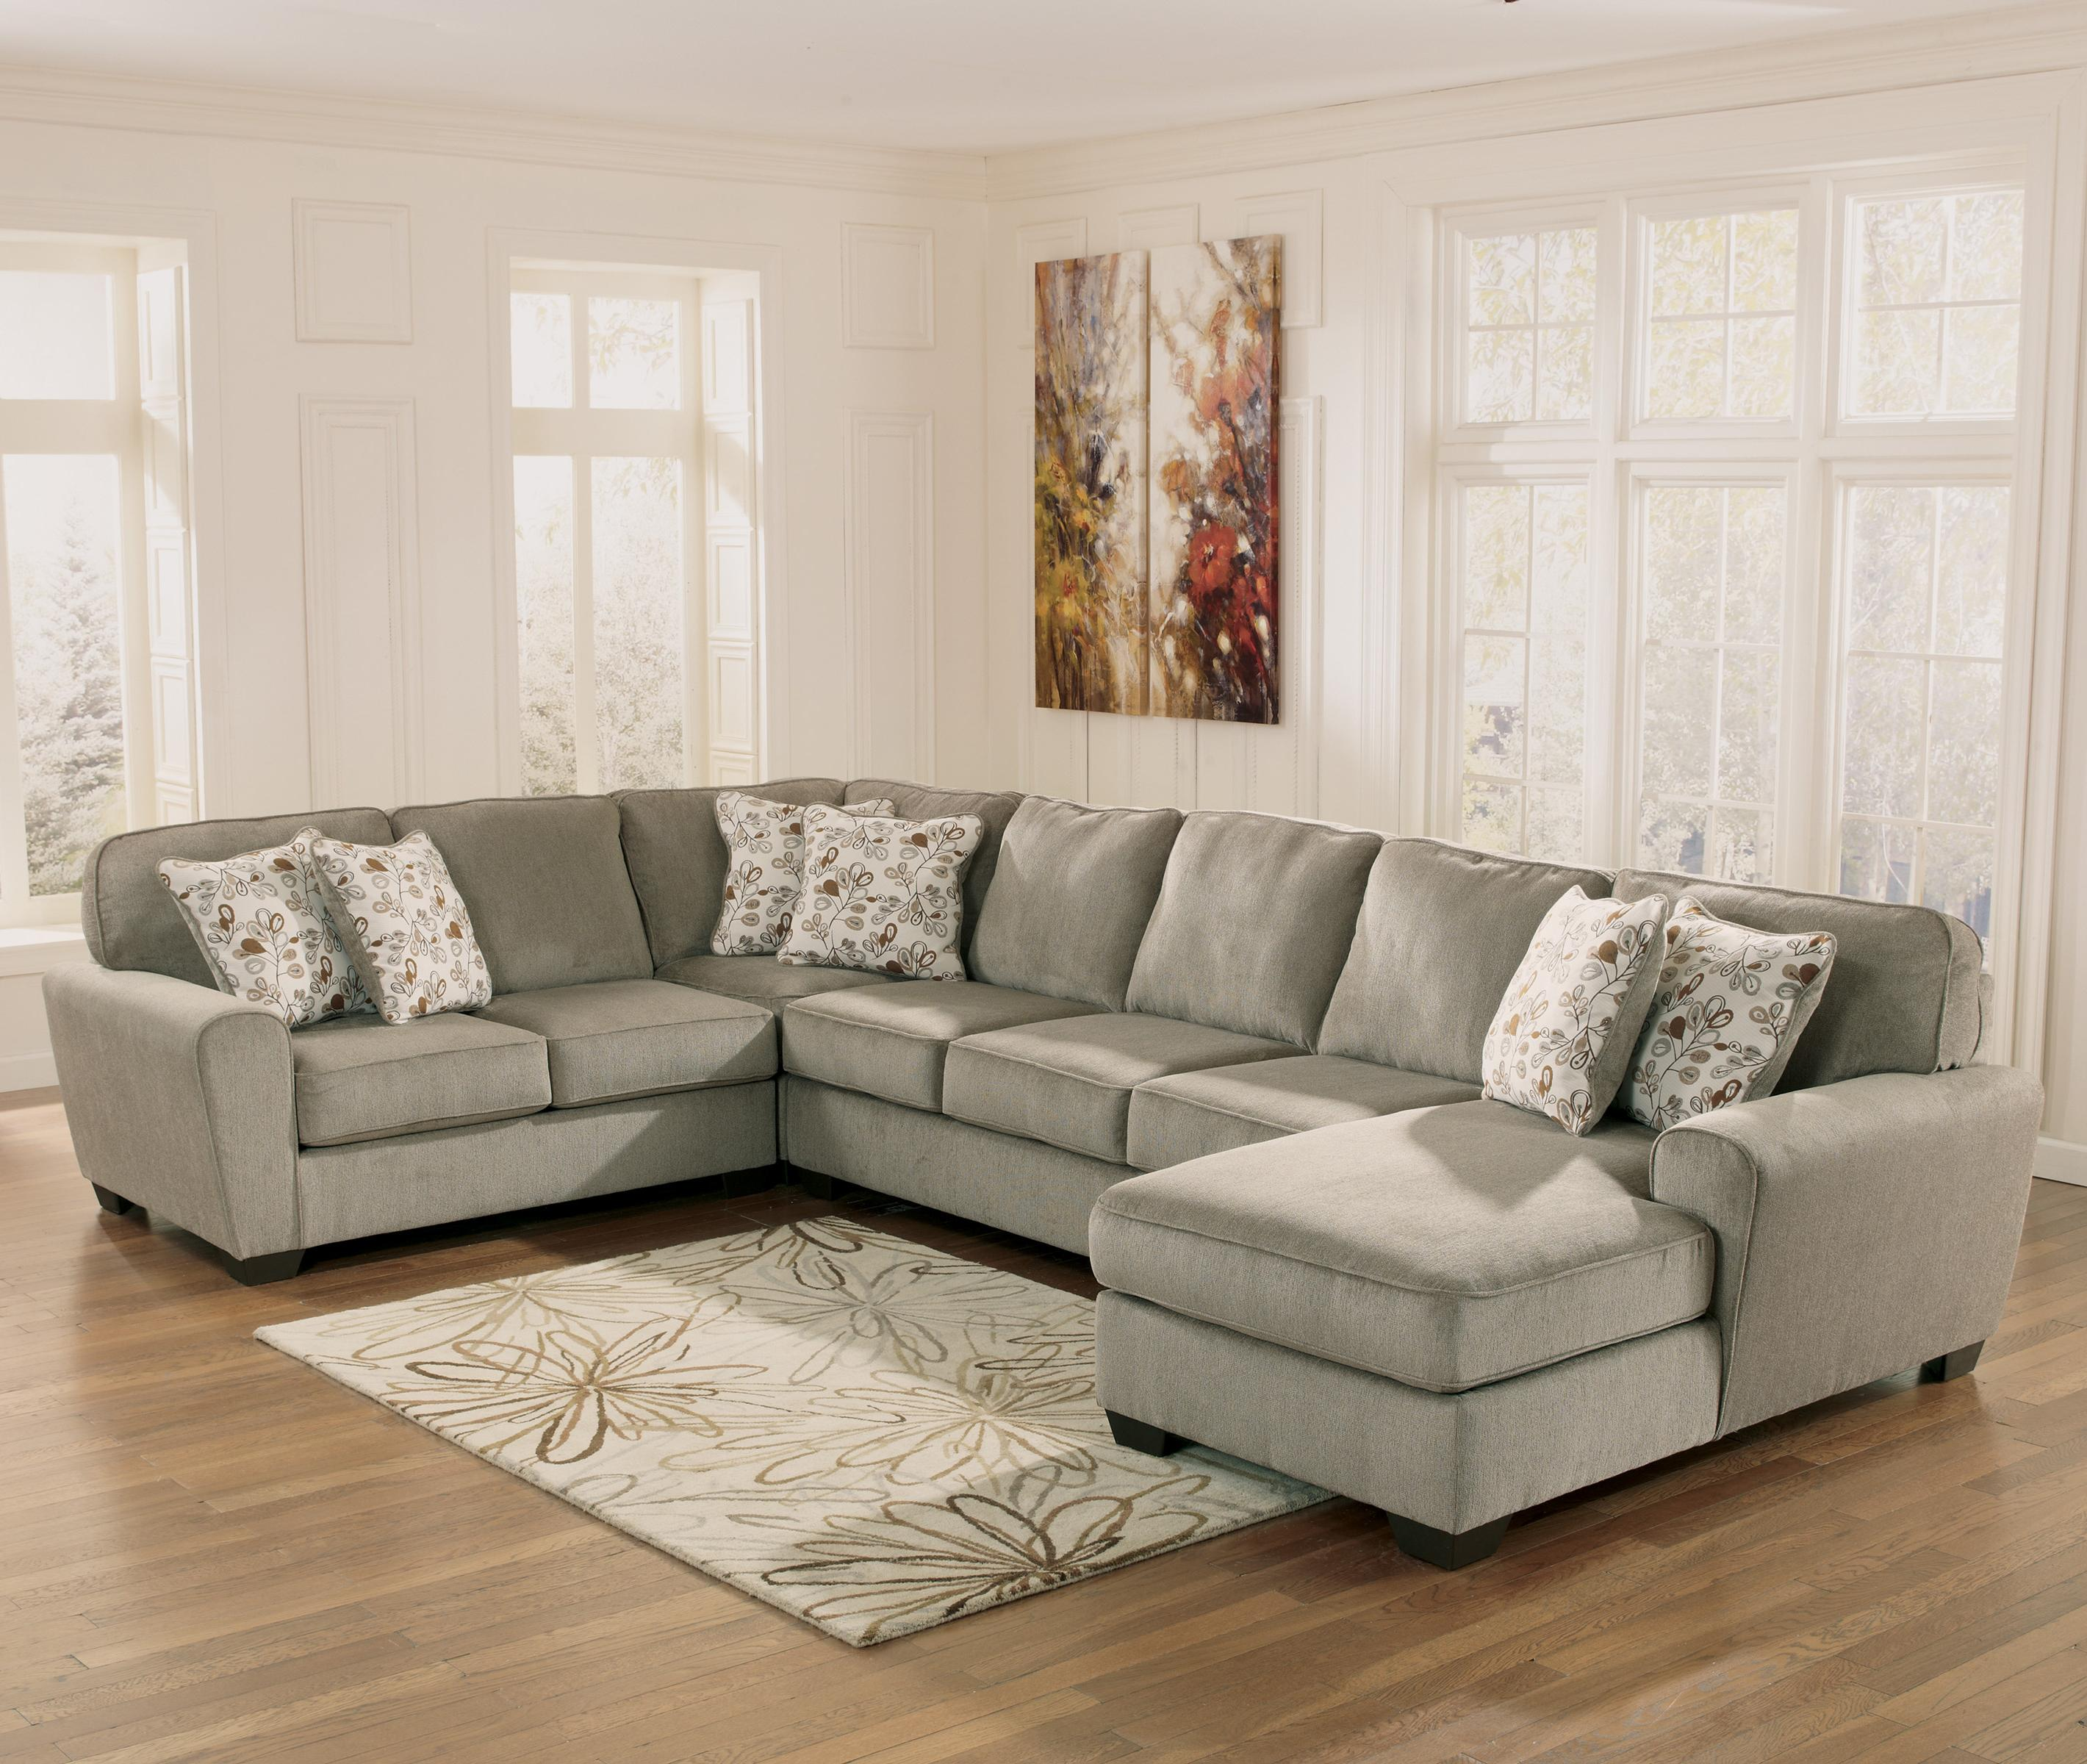 Ashley furniture patola park patina 4 piece sectional for Ashley furniture chaise couch